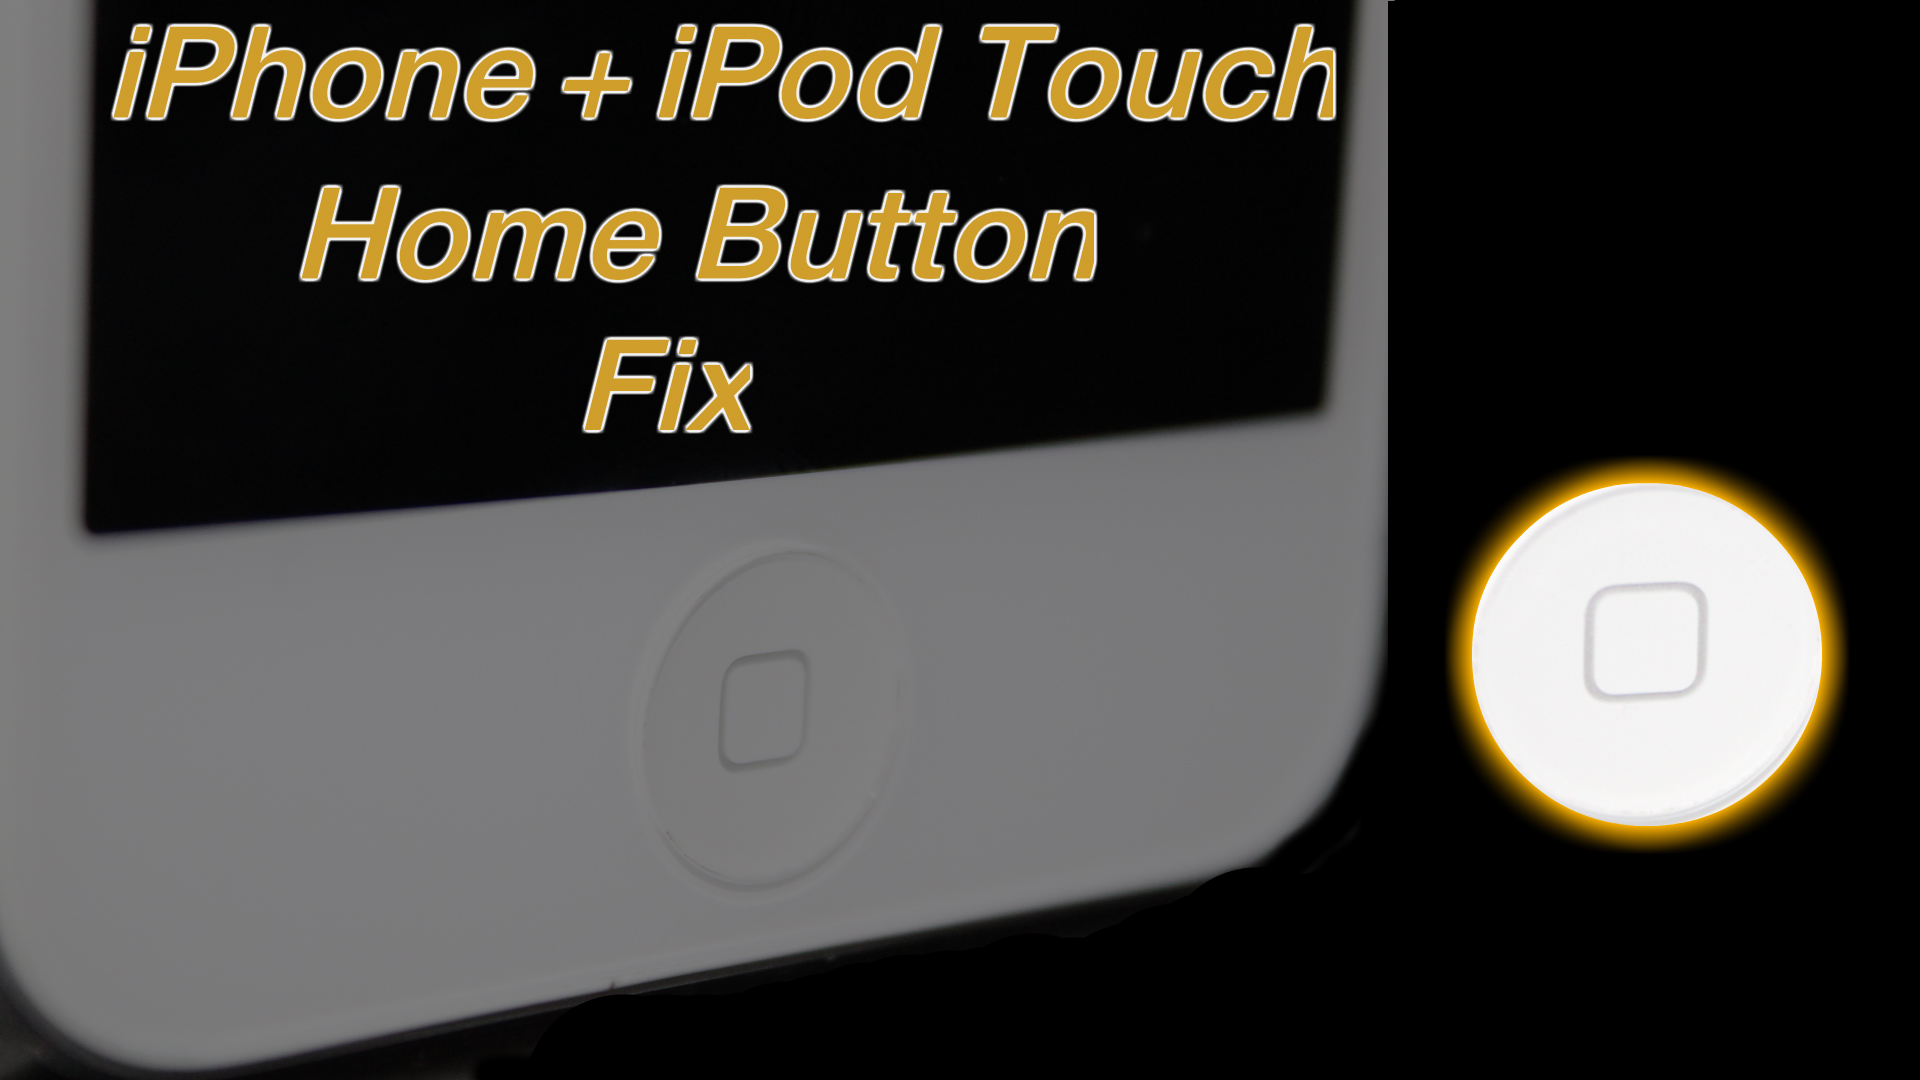 How To Fix iPhone Home Button Without Tools – iPhone – iPod Touch – iPad